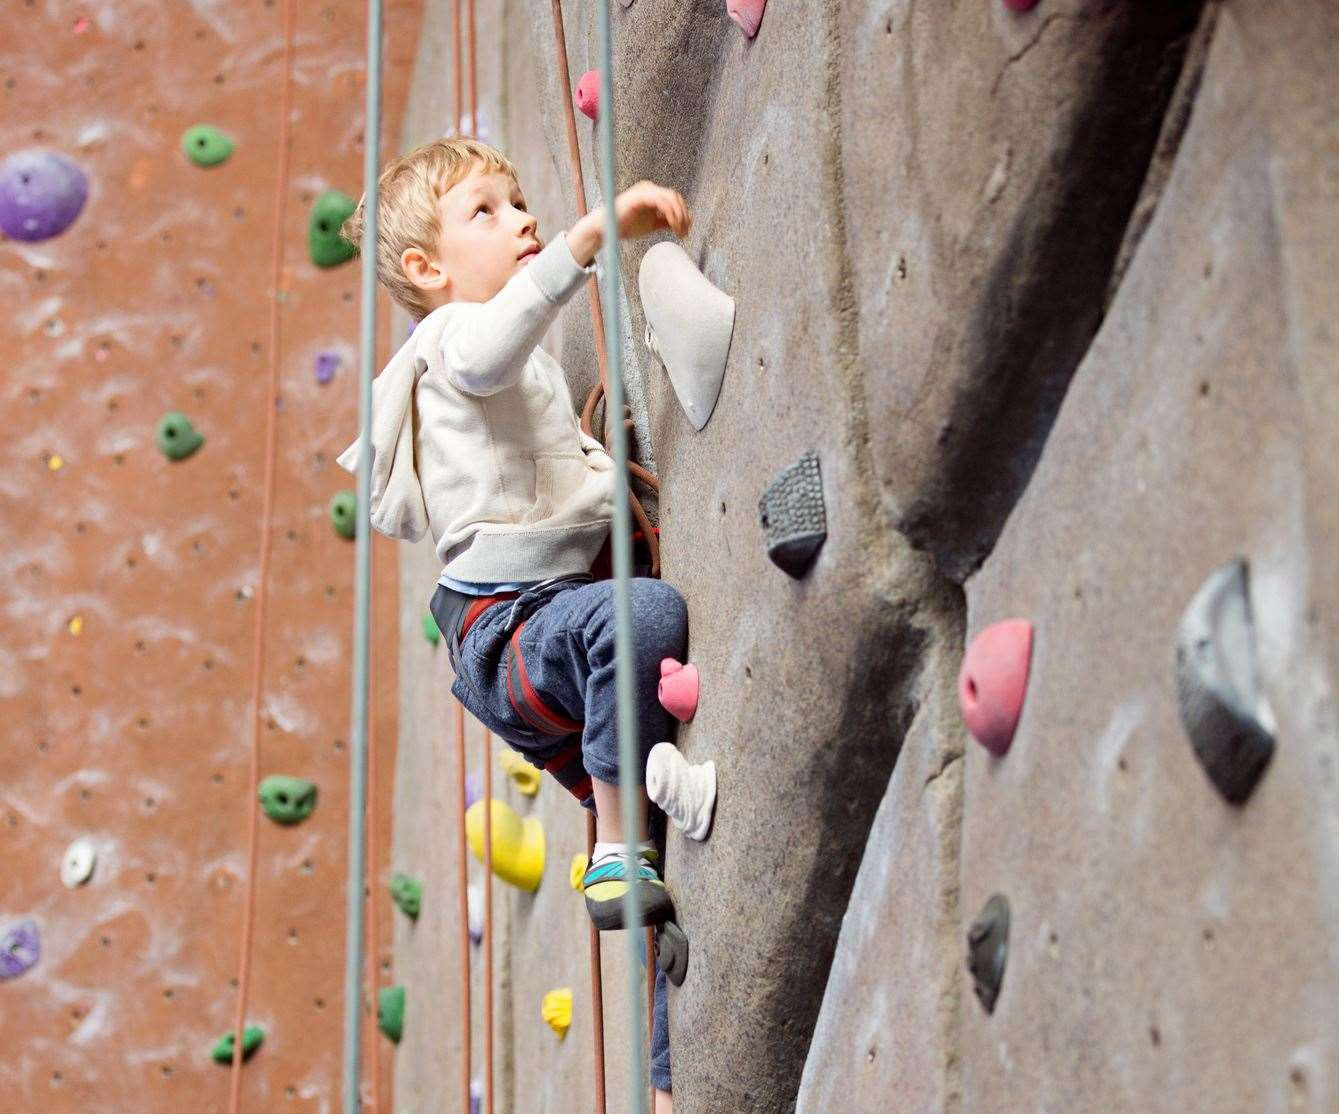 Get climbing at the new Climbing Experience in Maidstone